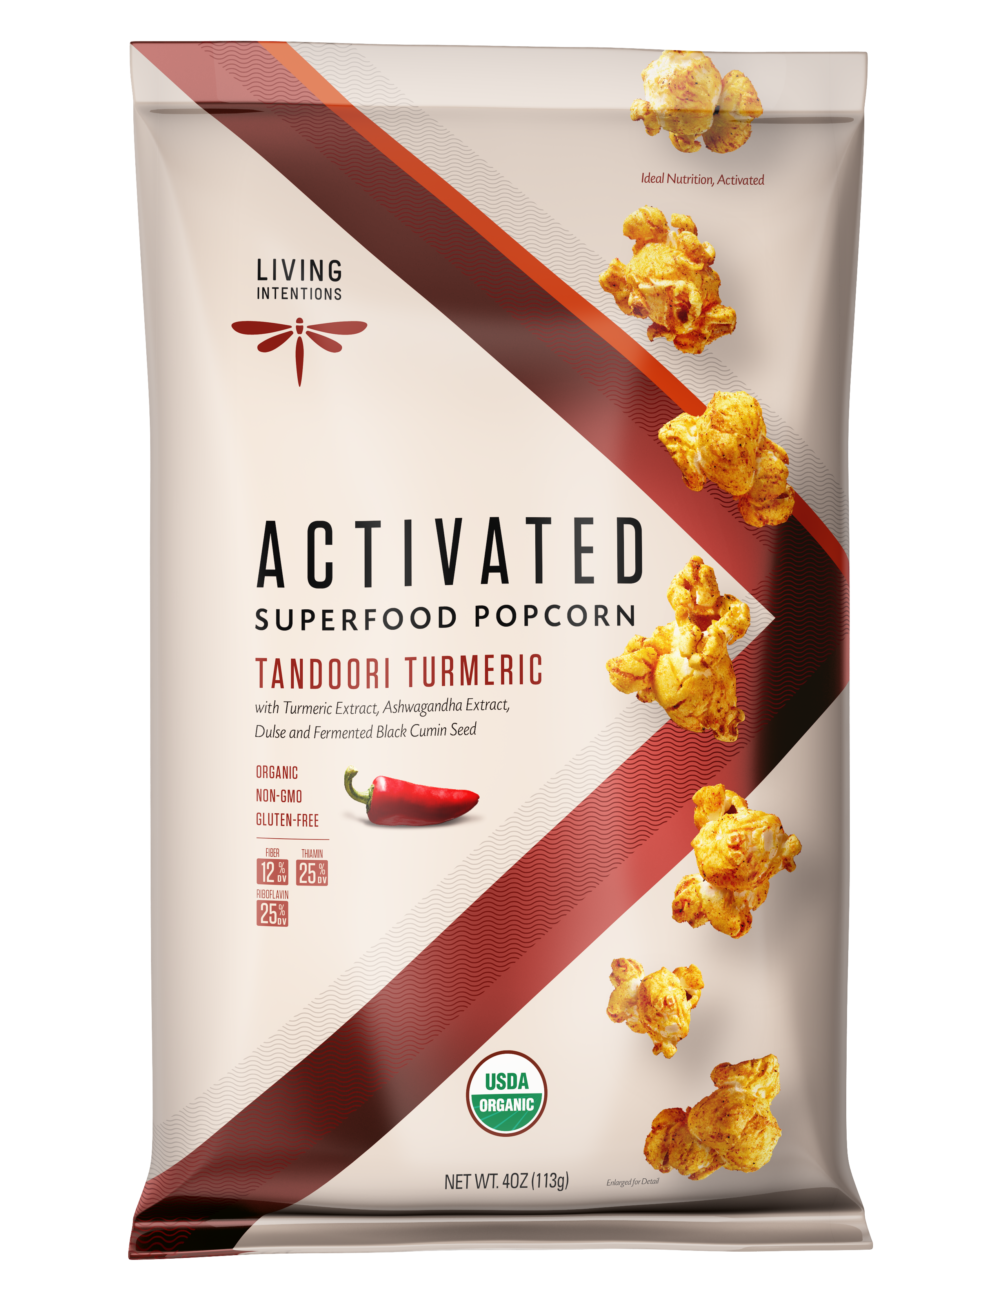 Living Intentions Superfood Popcorn